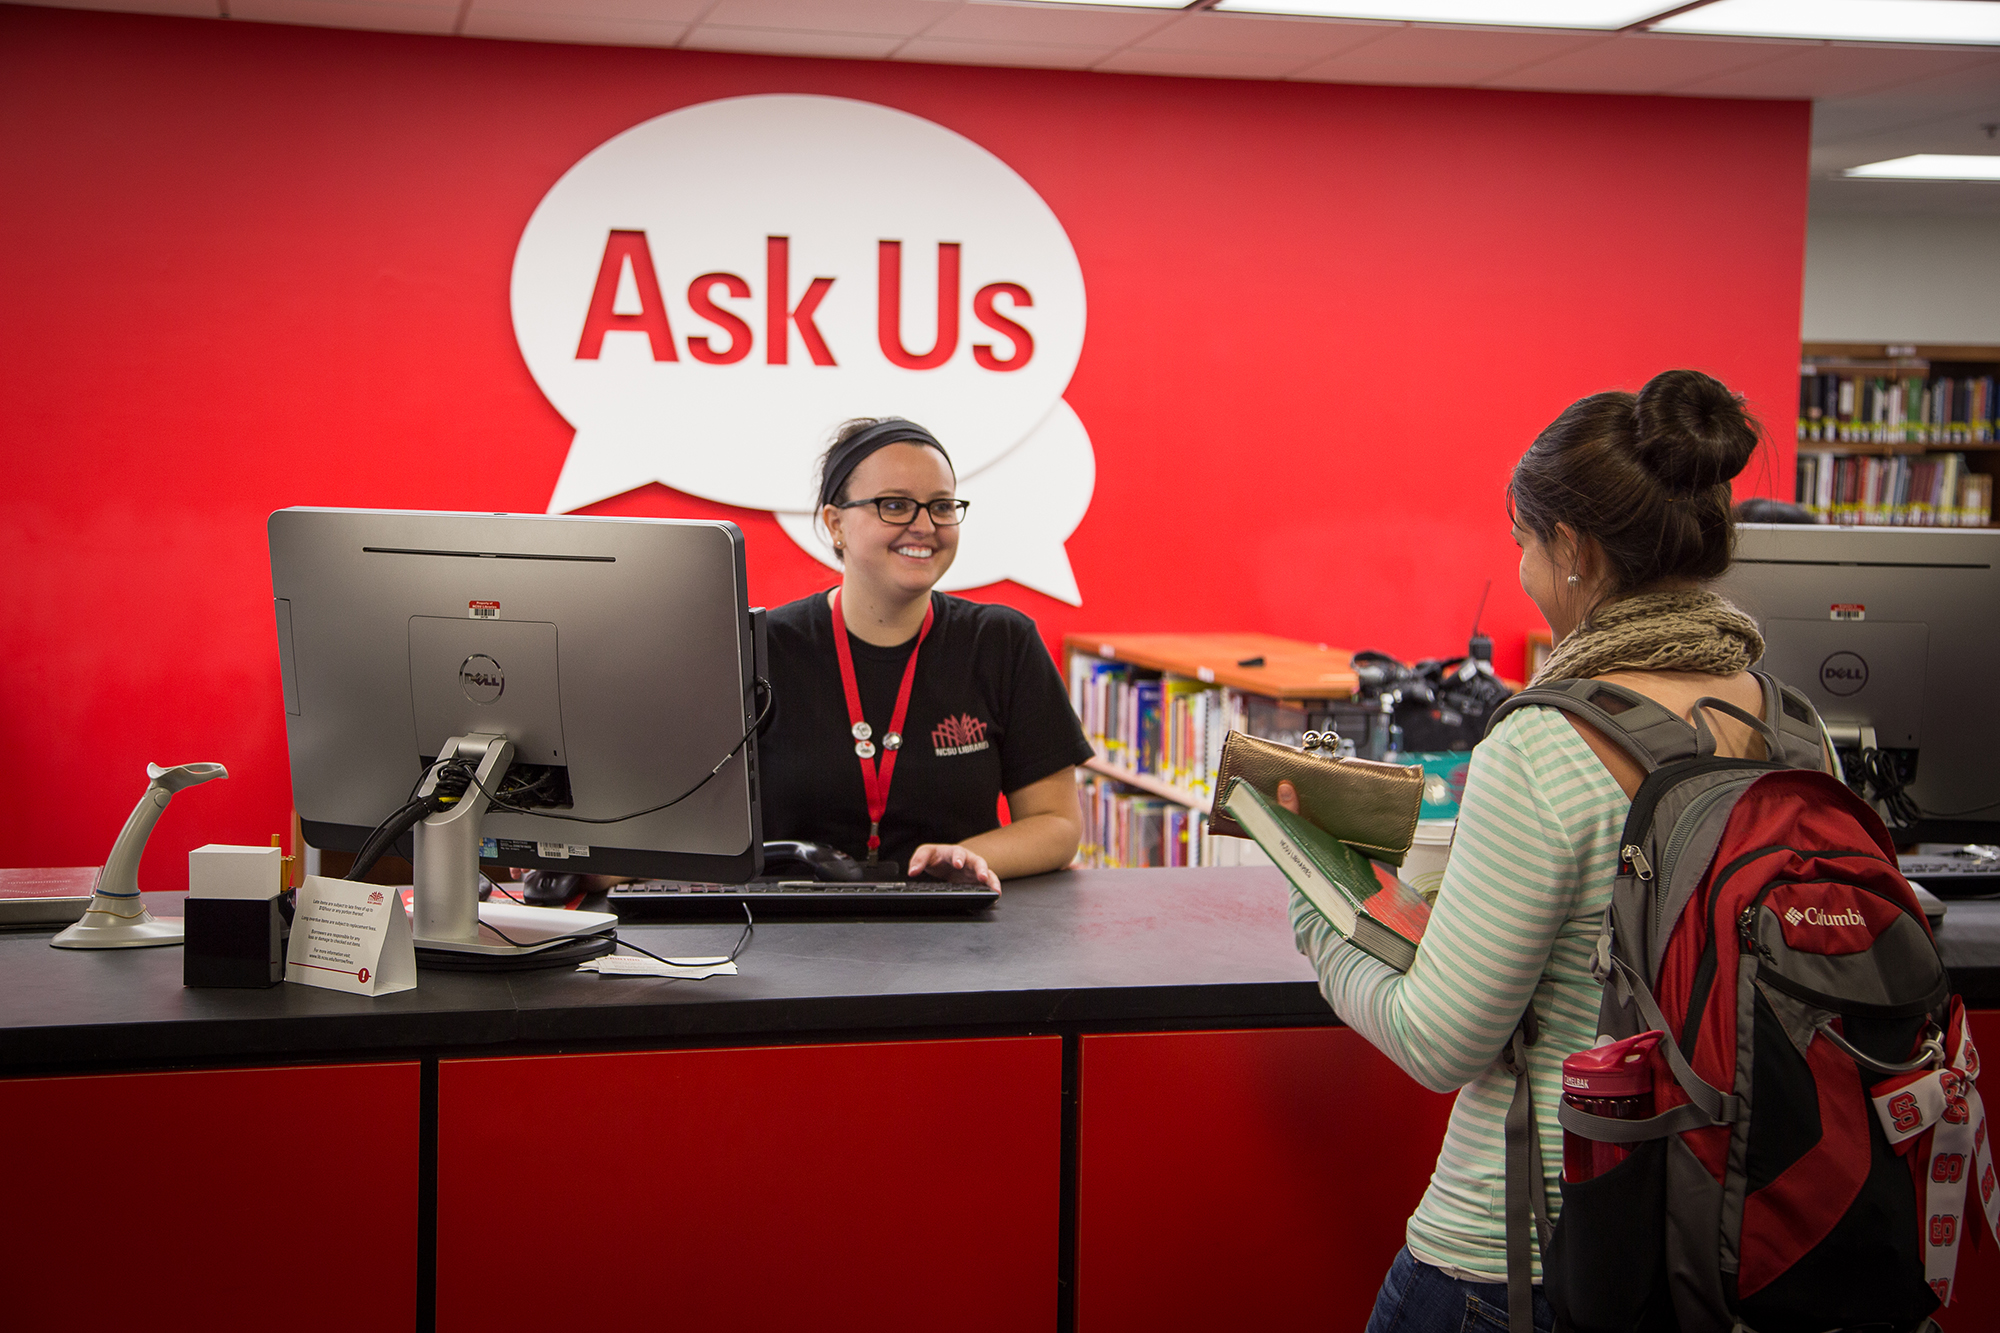 An employee helps a patron with a book at the Ask Us desk